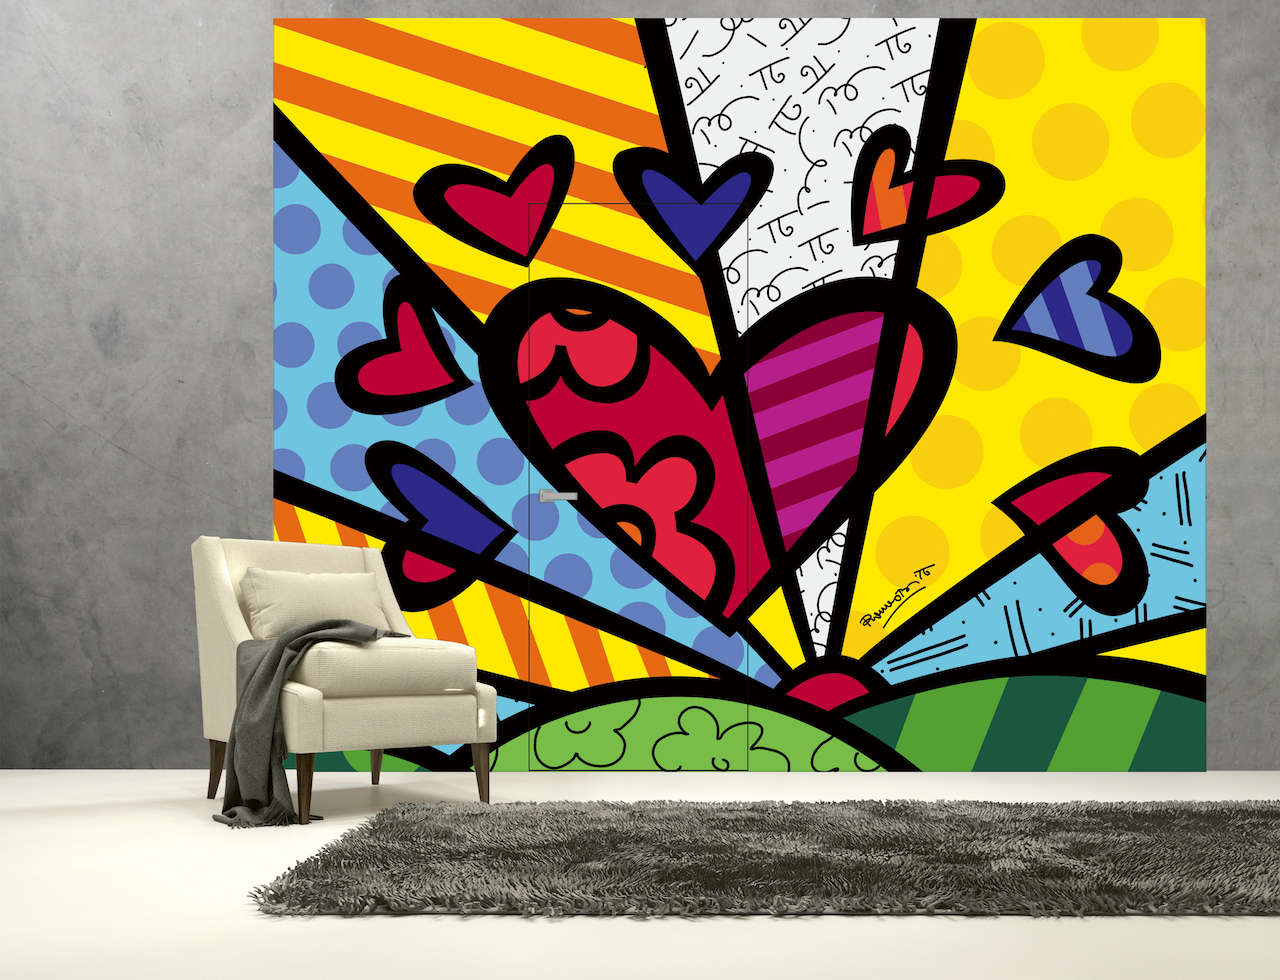 Britto loves Bertolotto